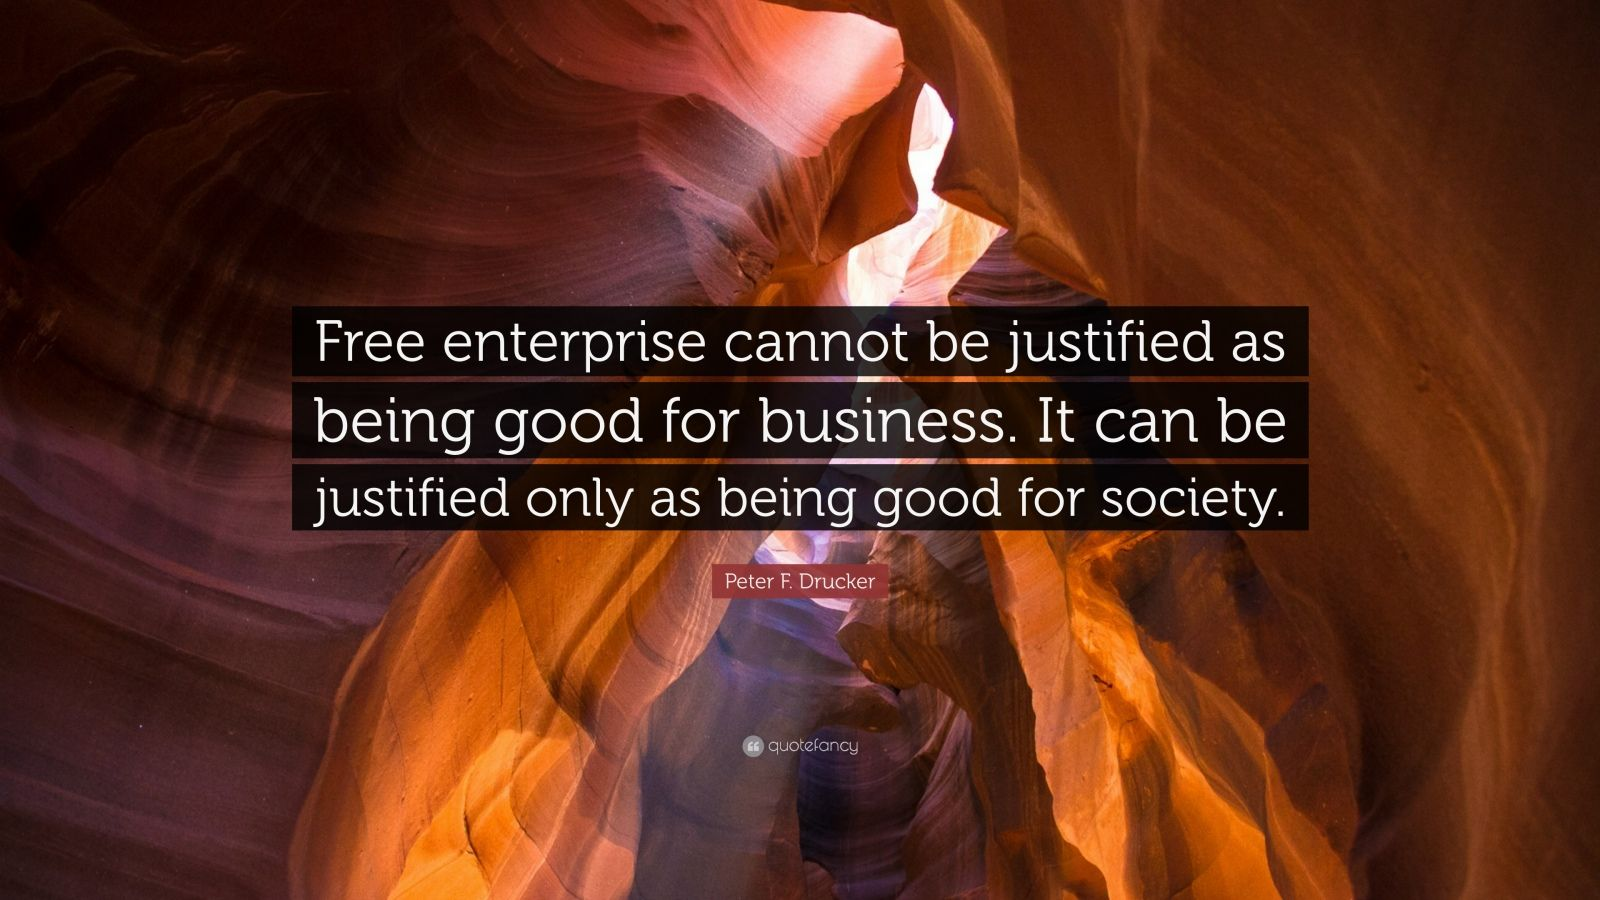 """Peter F. Drucker Quote: """"Free enterprise cannot be justified as being good for business. It can be justified only as being good for society."""""""